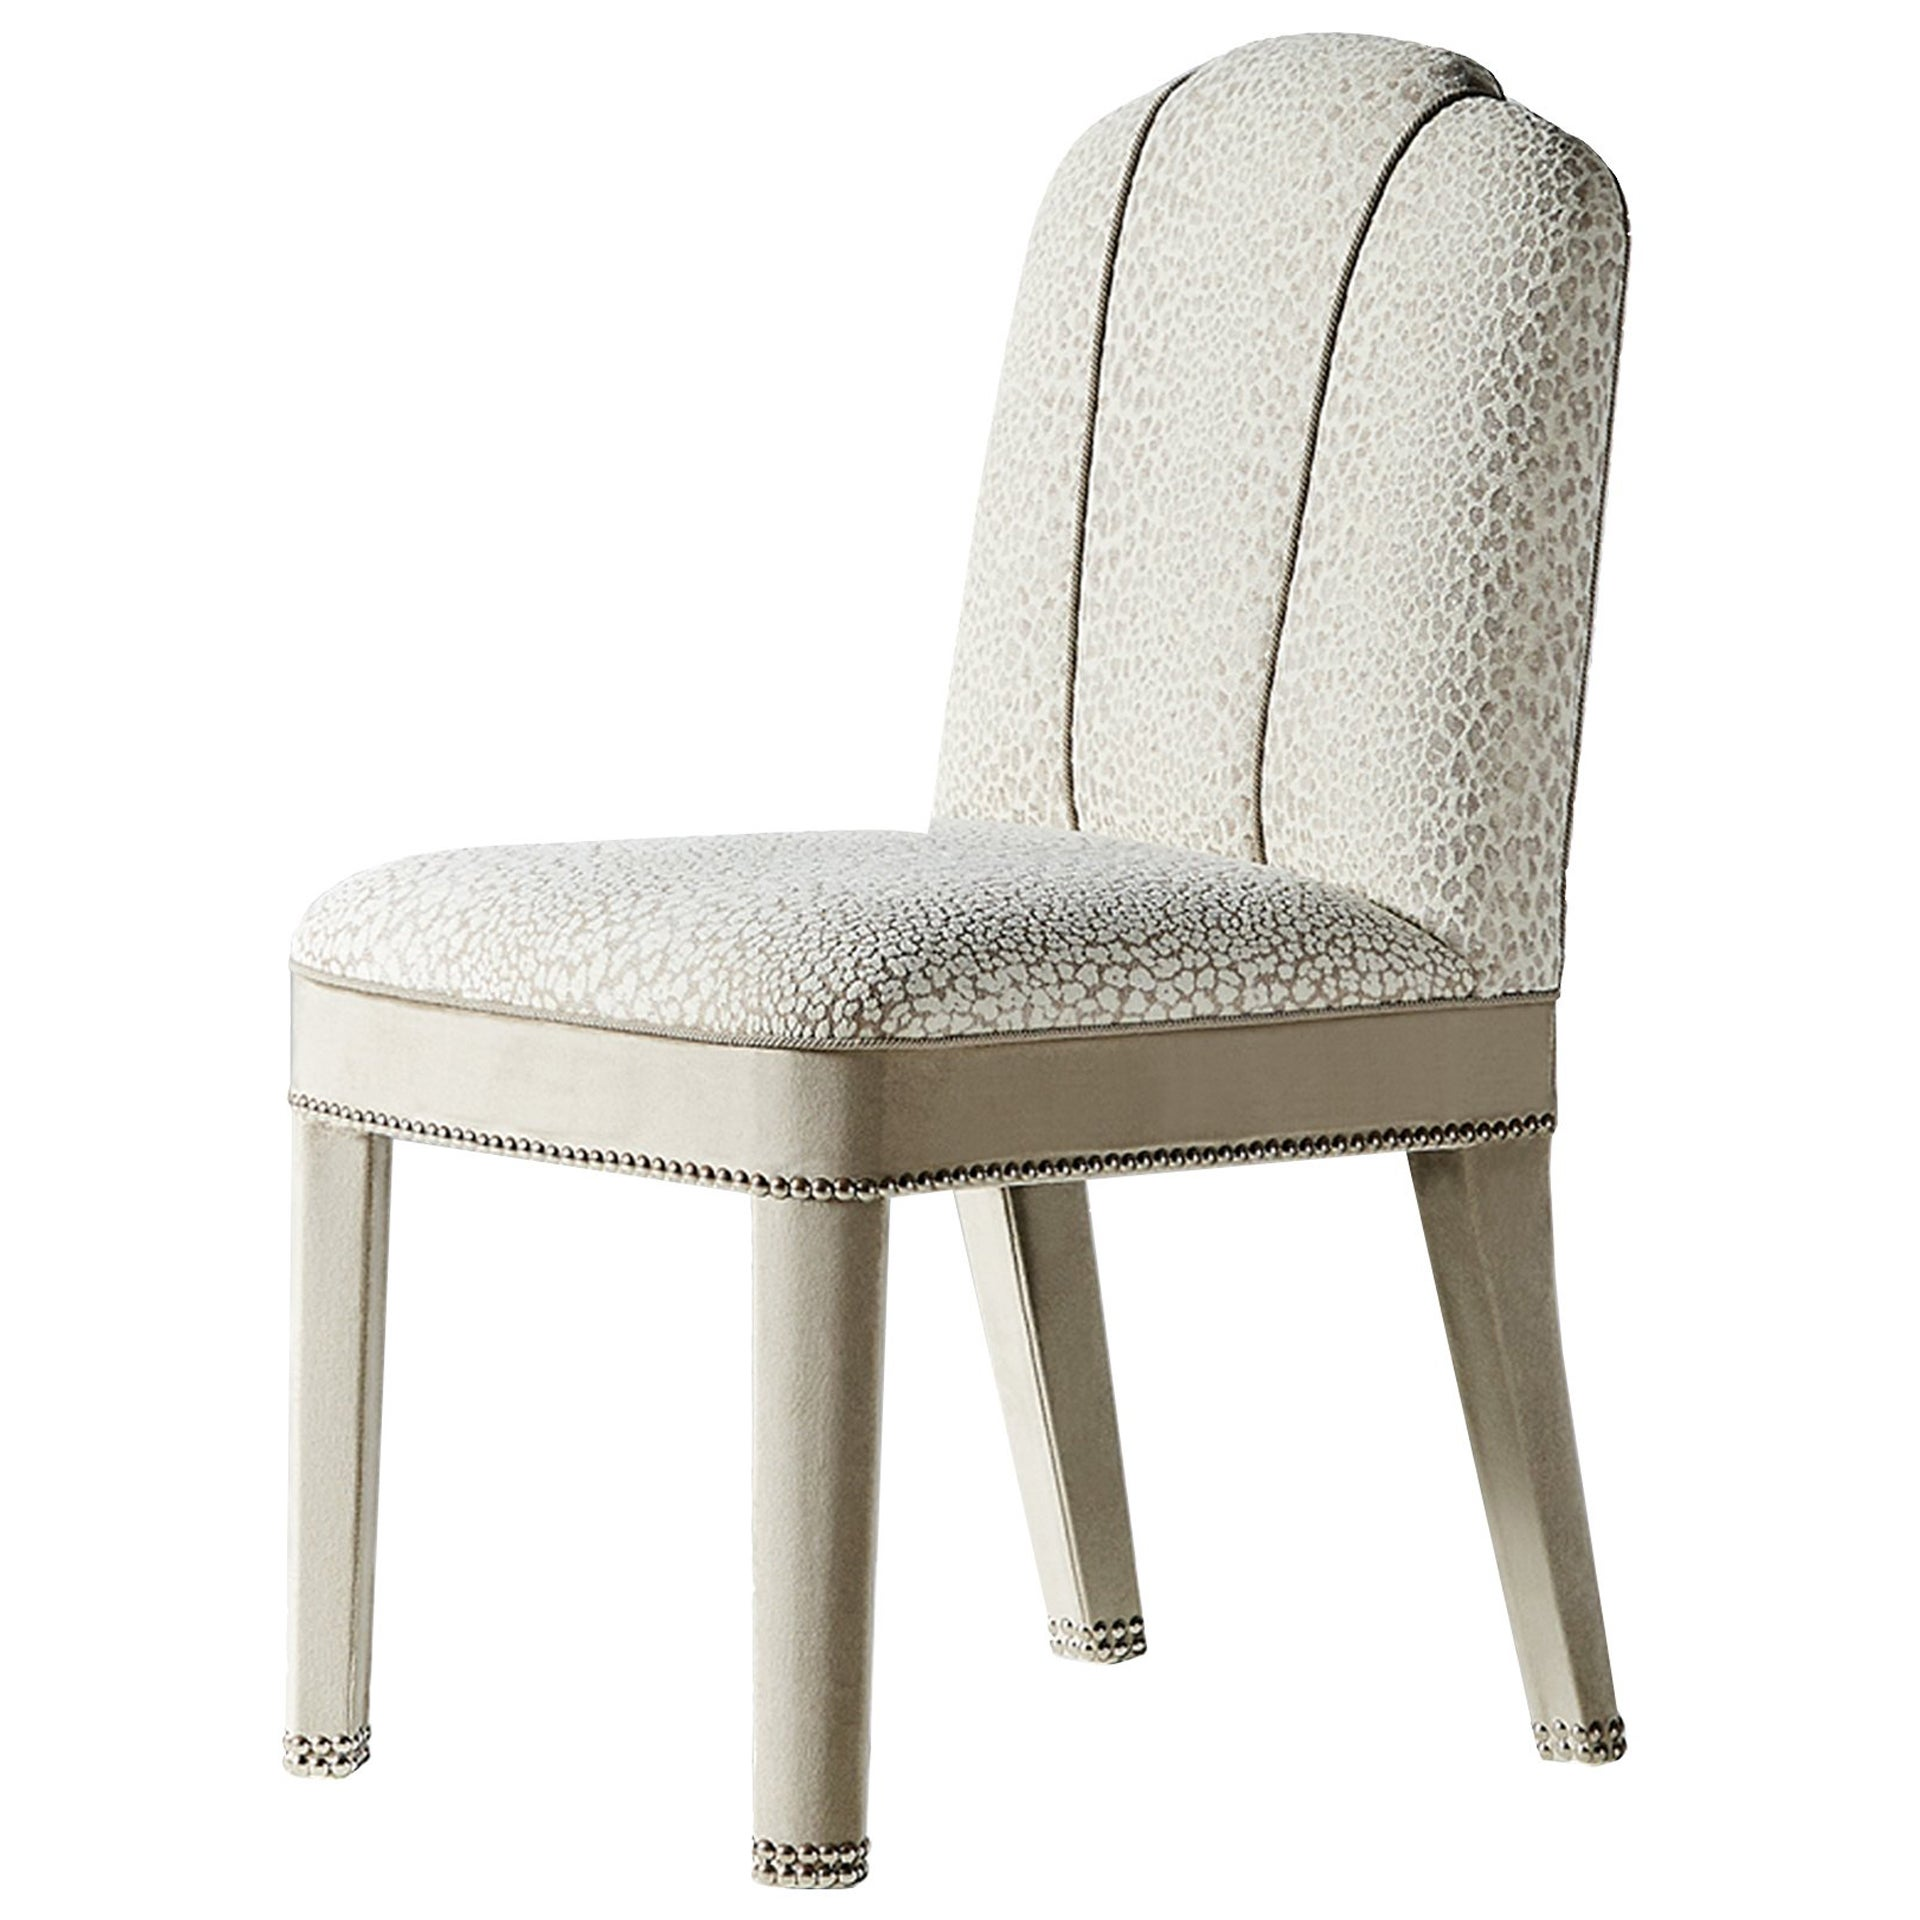 And Objects Abbas Dining Chair, Fully Upholstered in White Velvet & Chrome